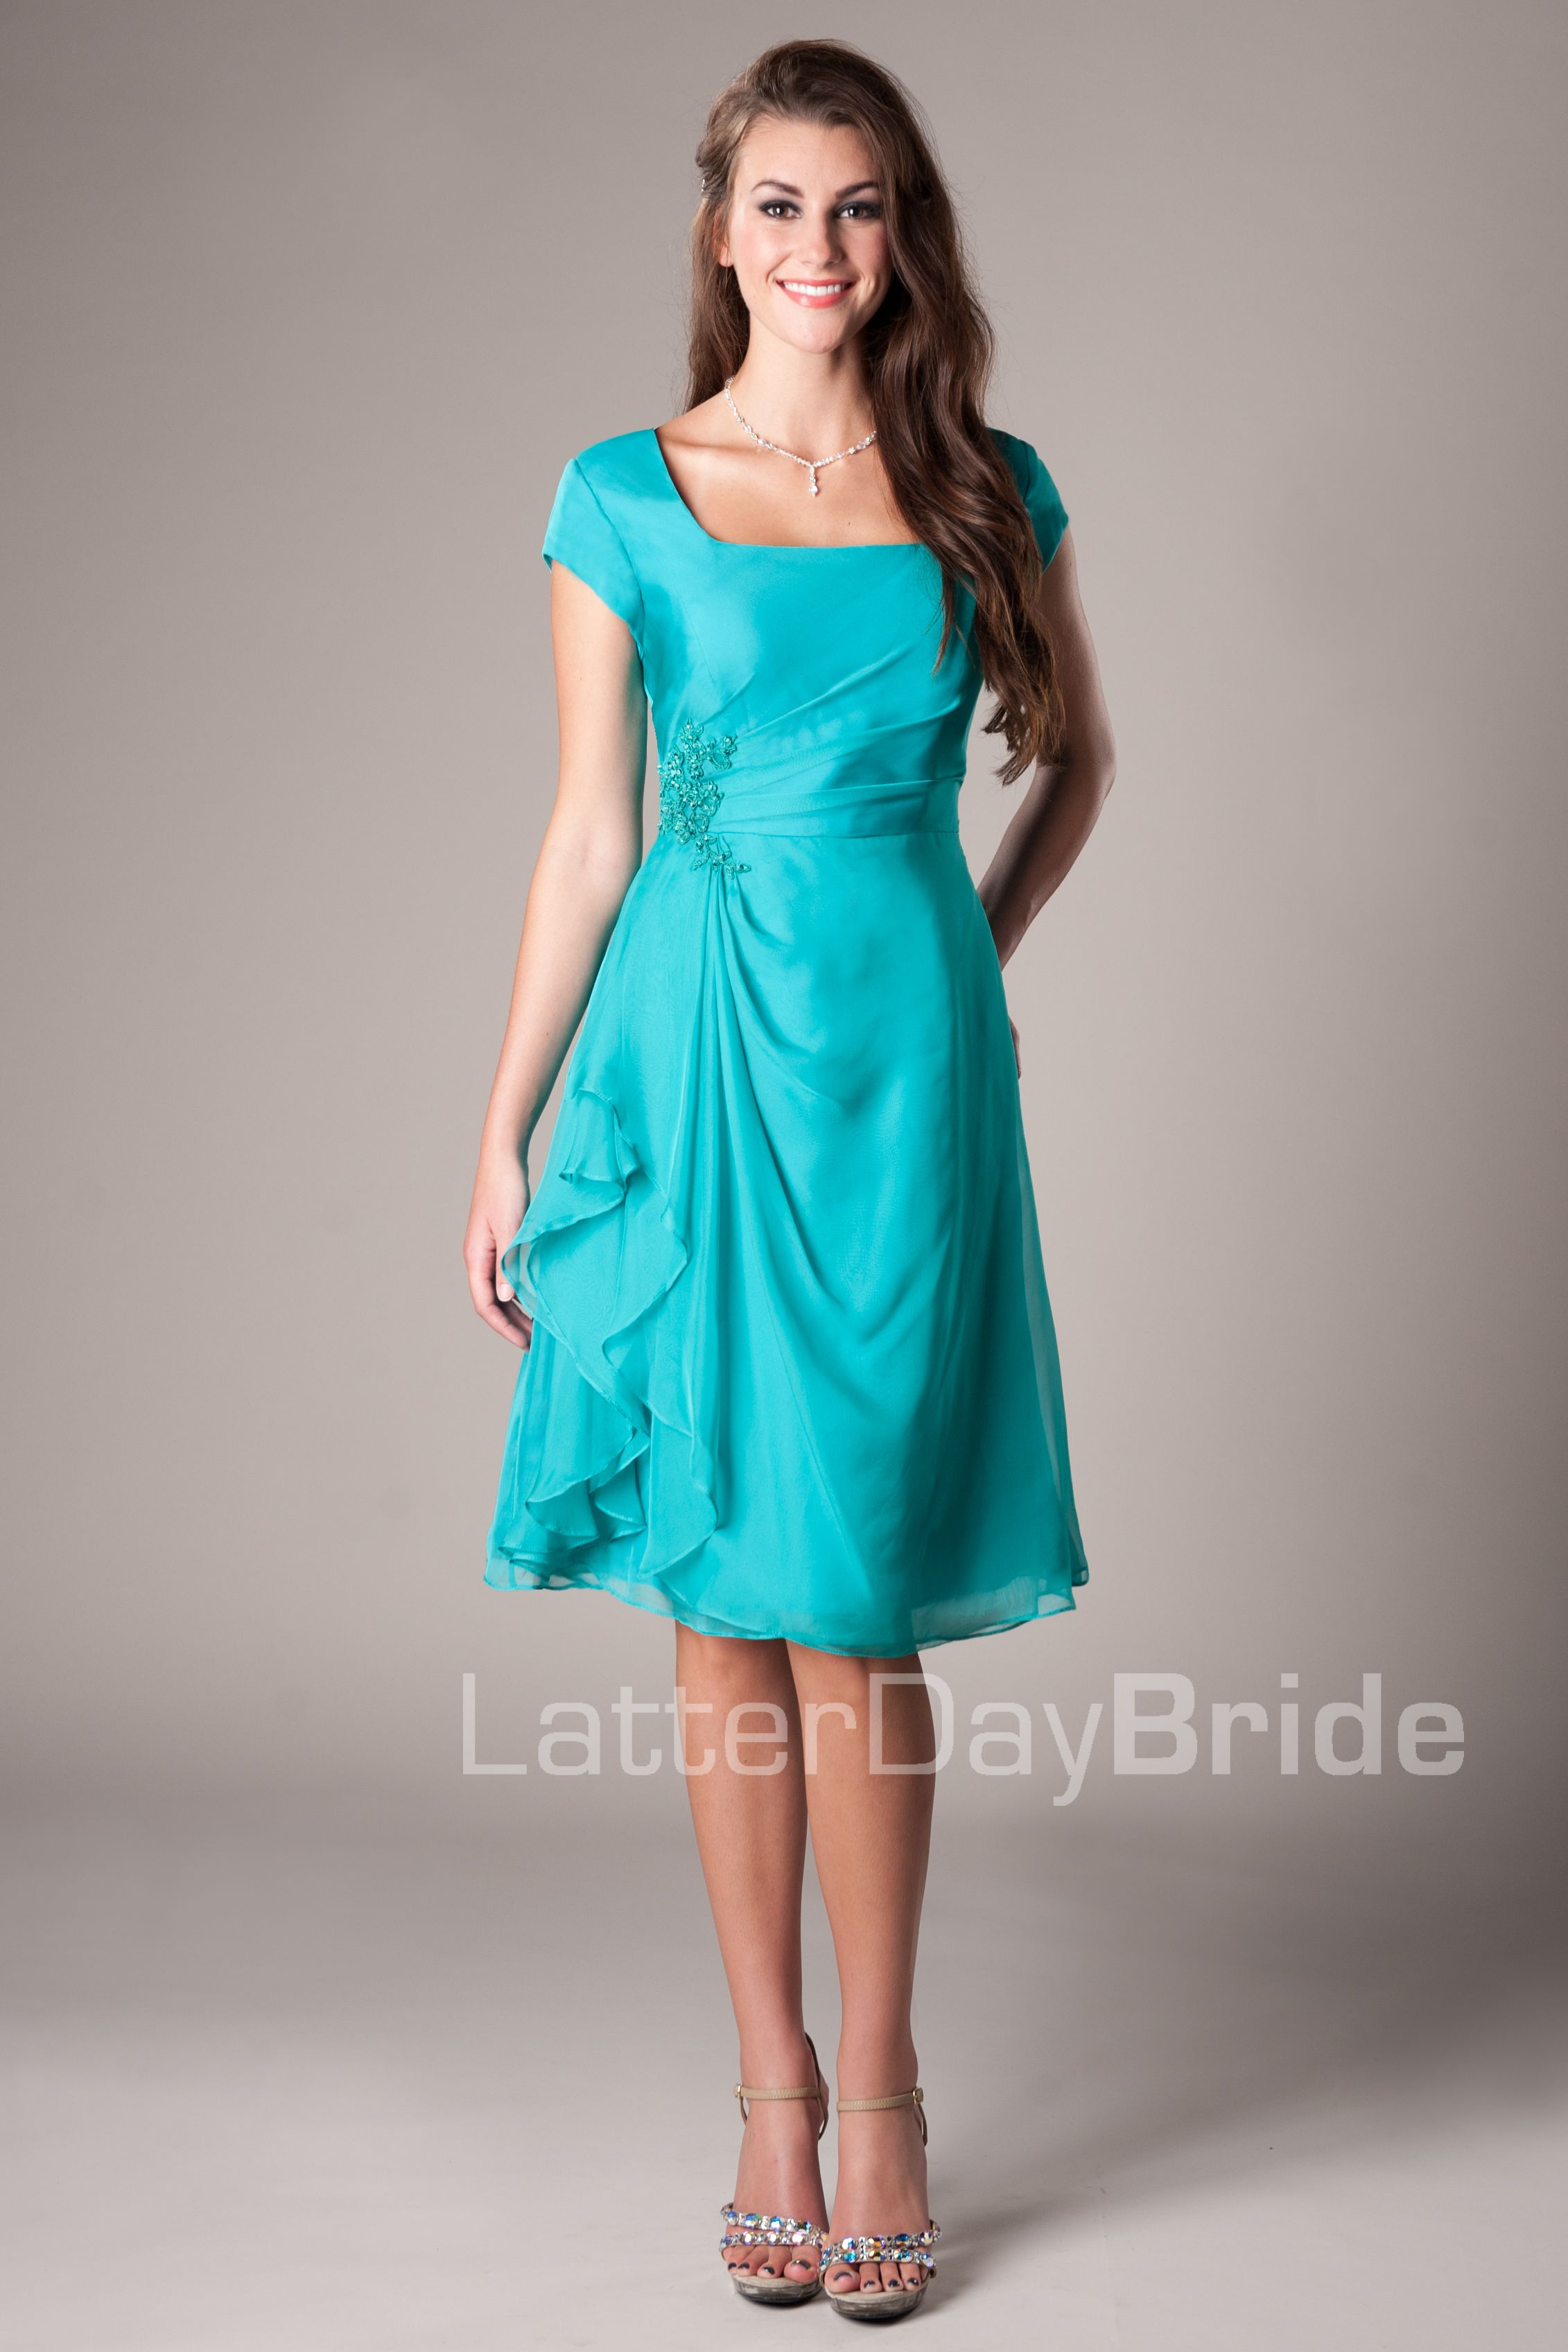 The Bridesmades Dresses(: But orange or yellow(: Latter-Day Bride ...